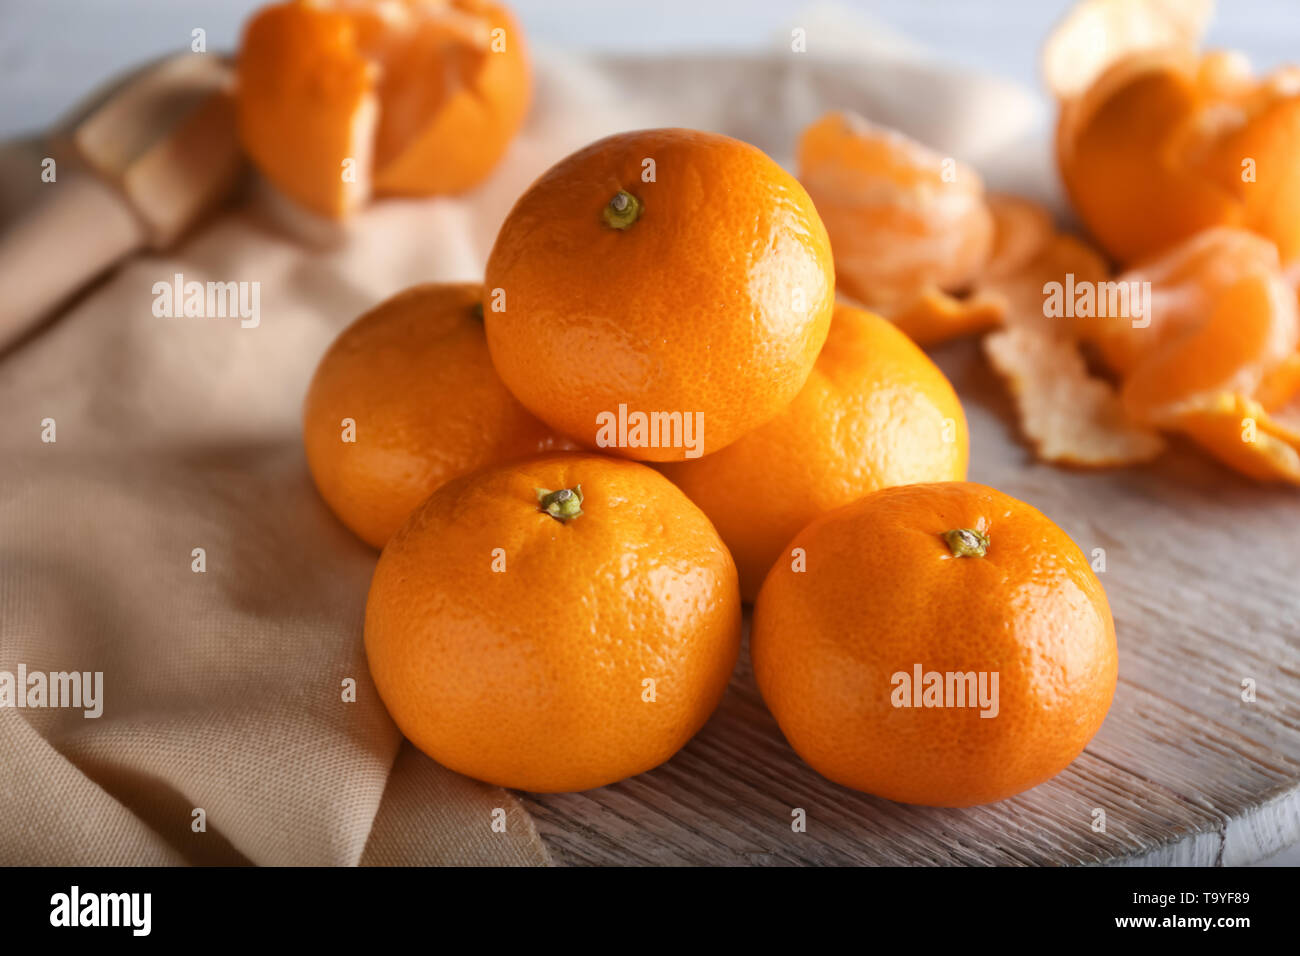 Ripe sweet tangerines on wooden table - Stock Image